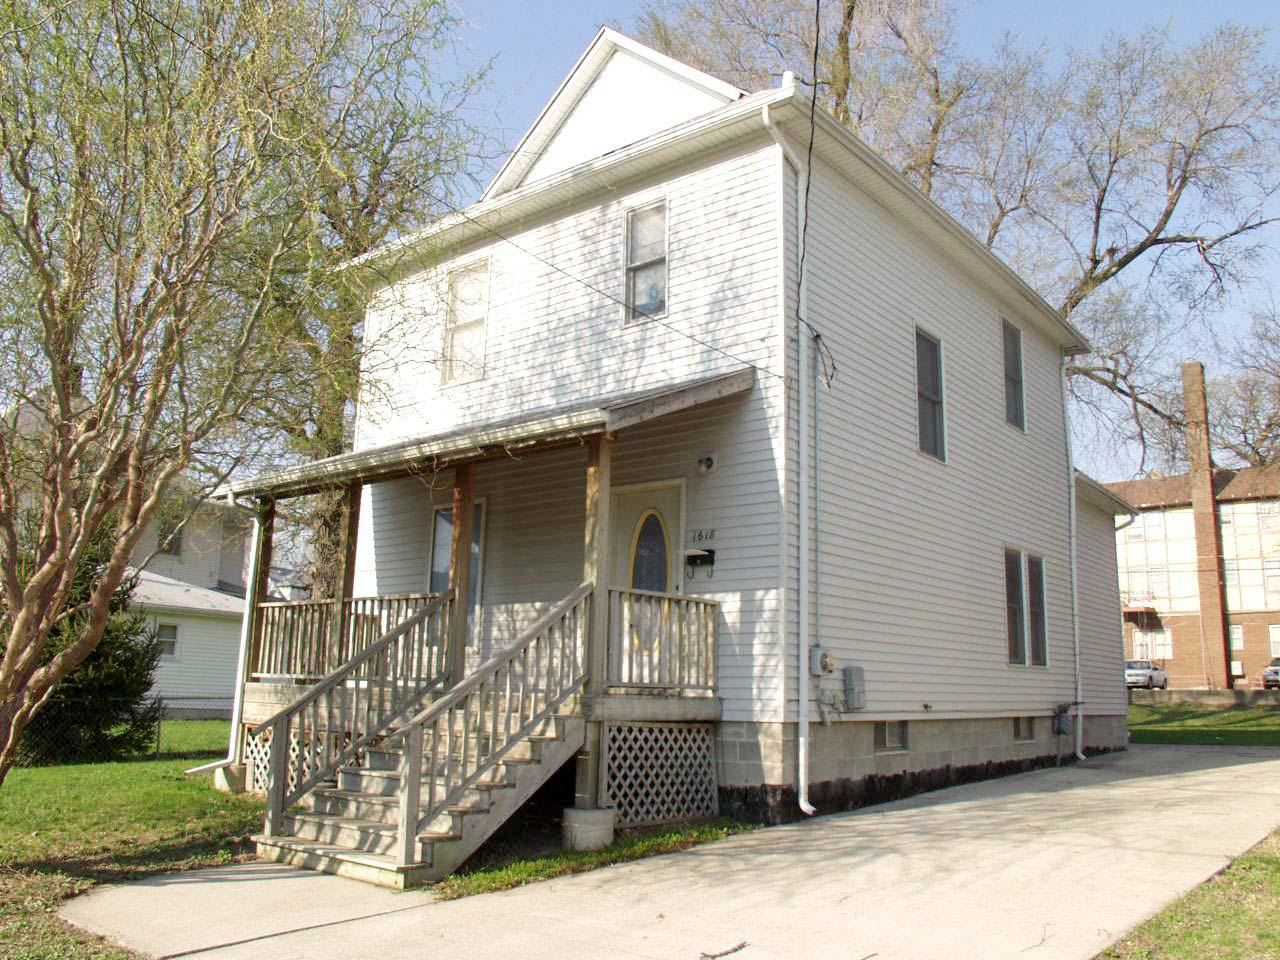 Des Moines, Iowa IA For Sale By Owner, Iowa FSBO Home in Des Moines IA, 8TH ST ForSaleByOwner